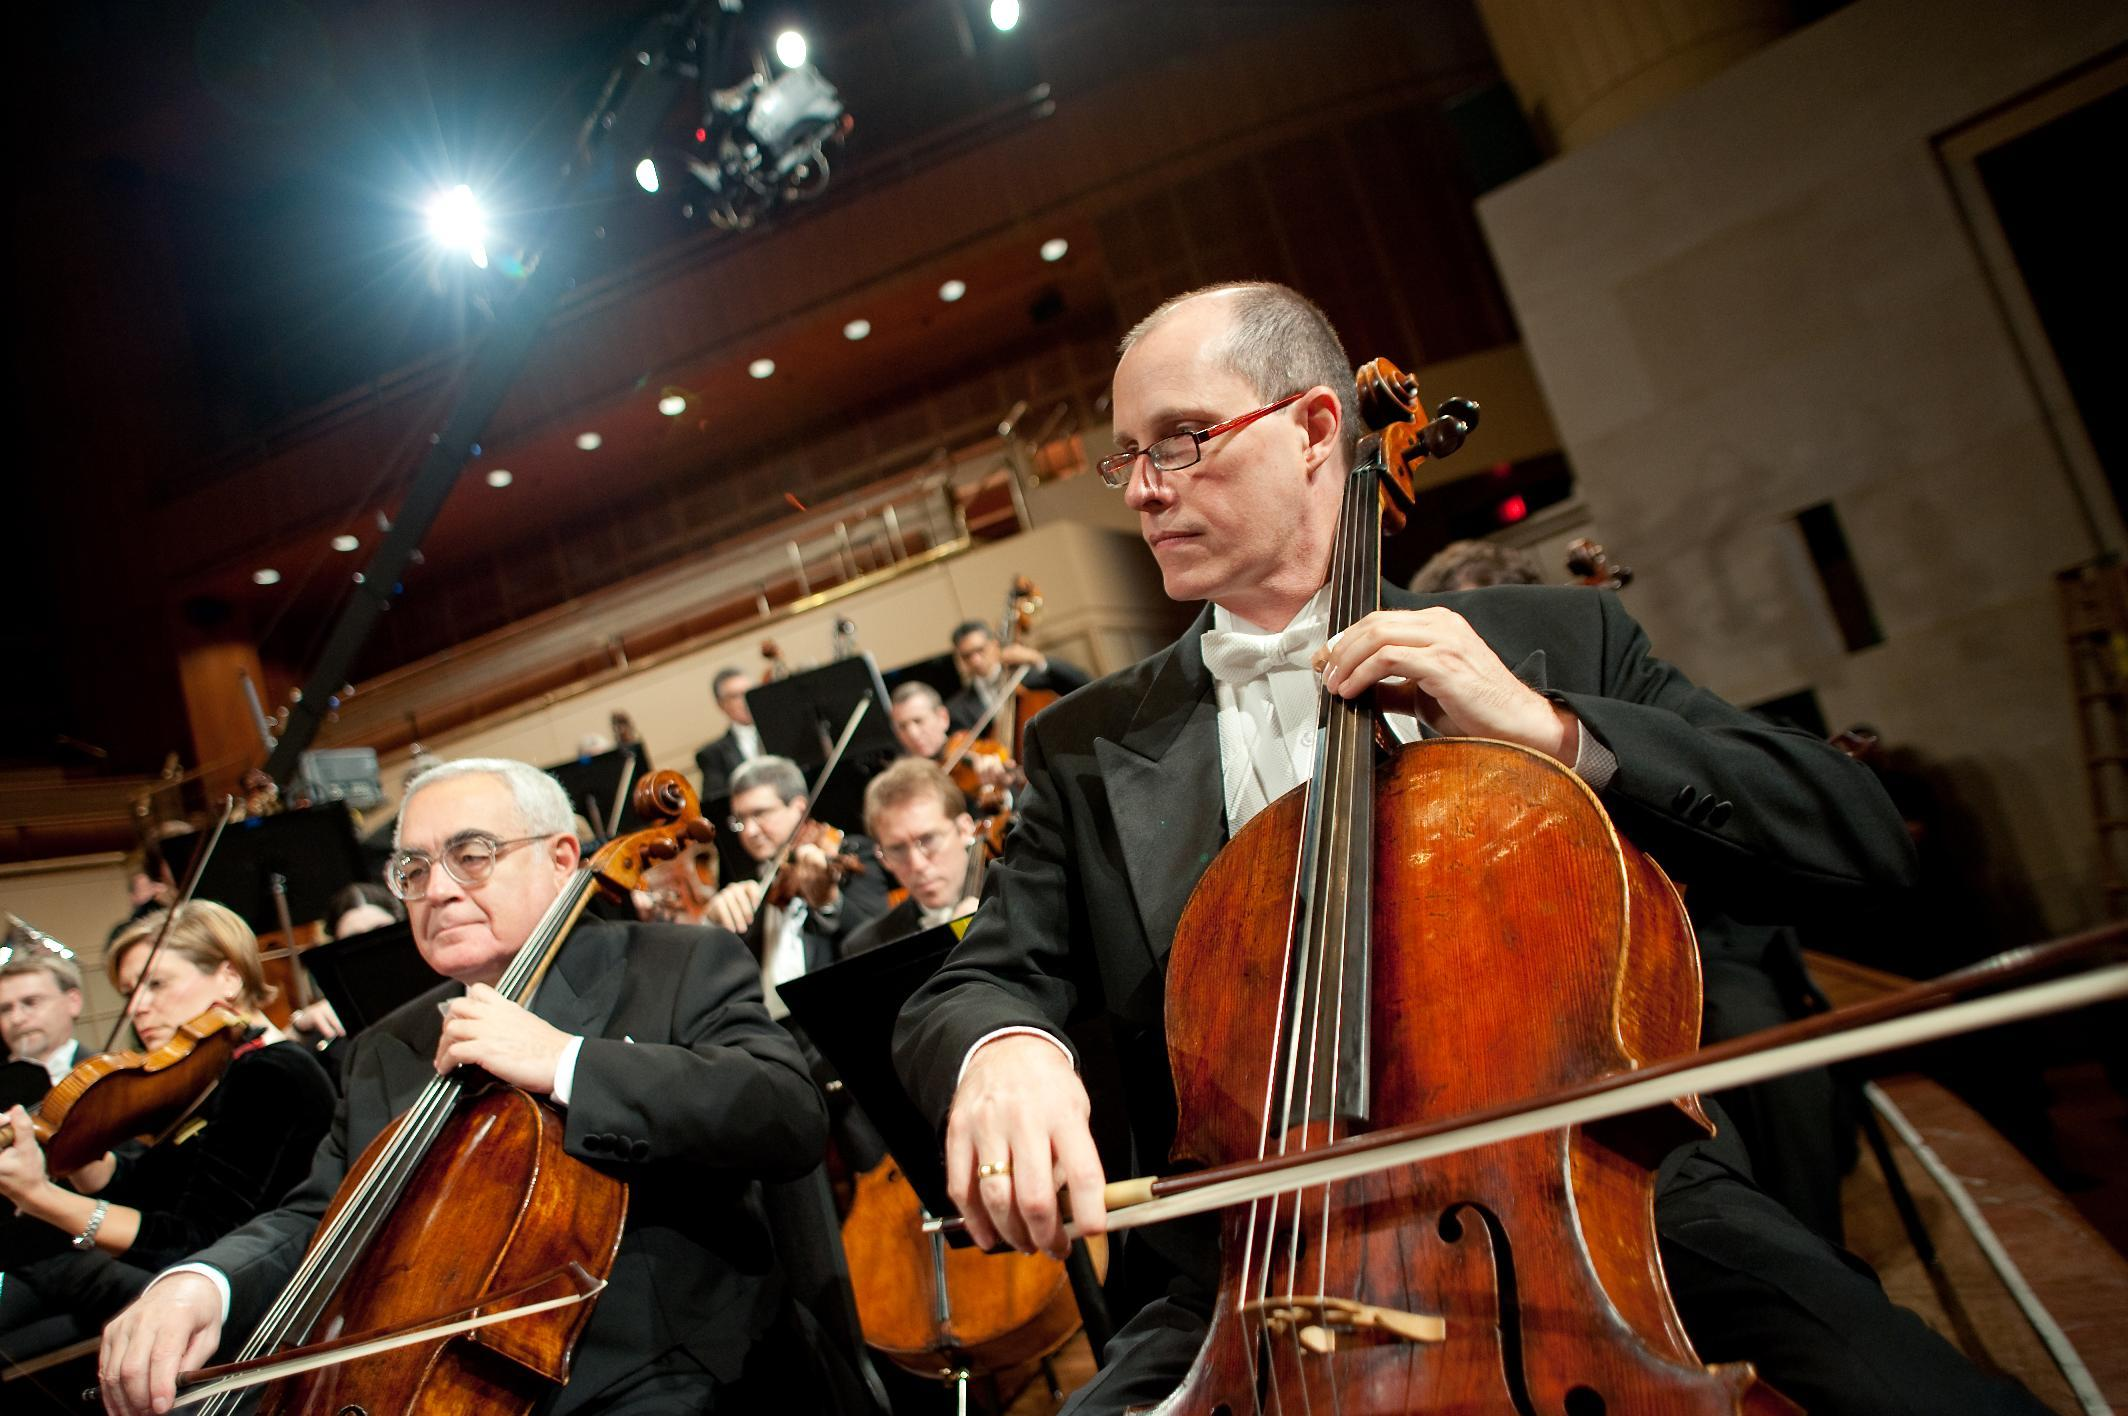 Symphony Orchestra and Classical Music Ensembles